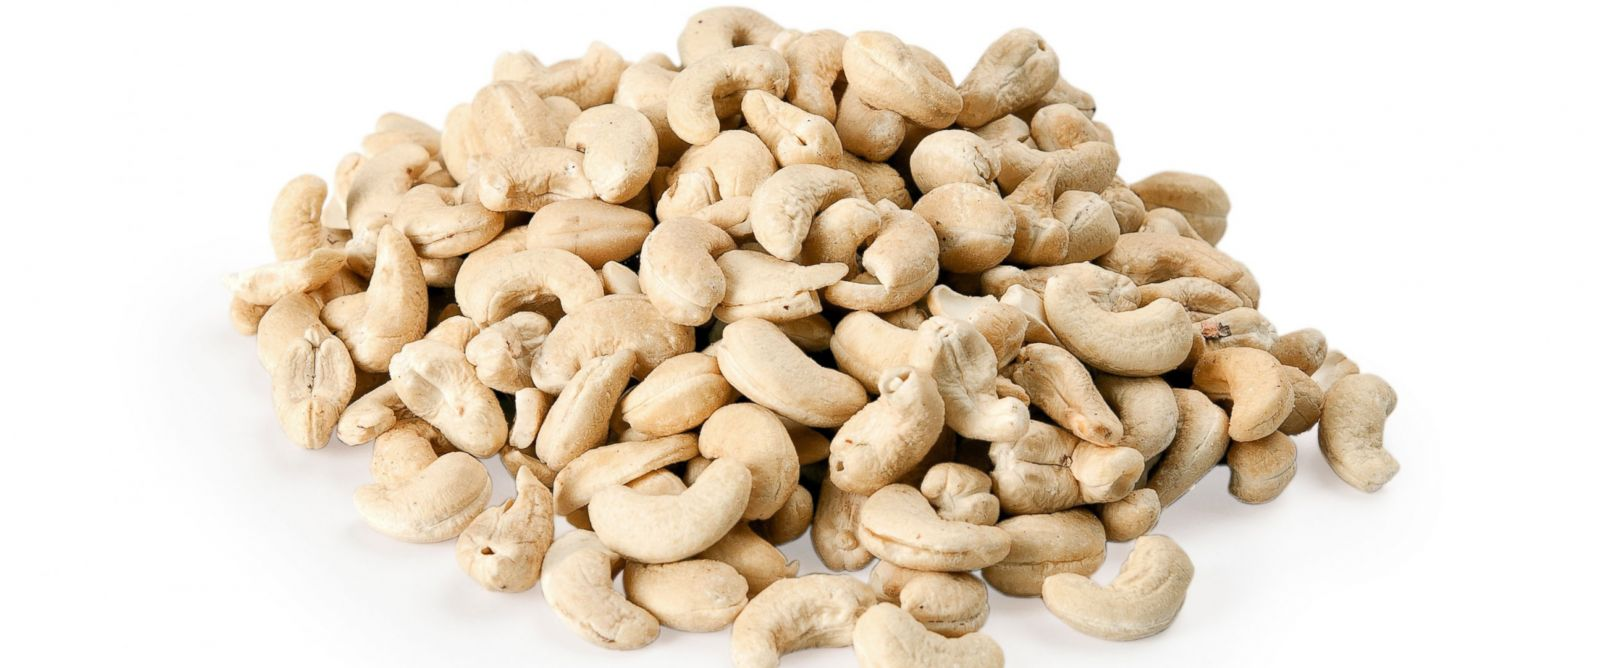 Trader Joes is recalling bags of raw cashews after the supplier of the nuts warned some bags may contain salmonella.